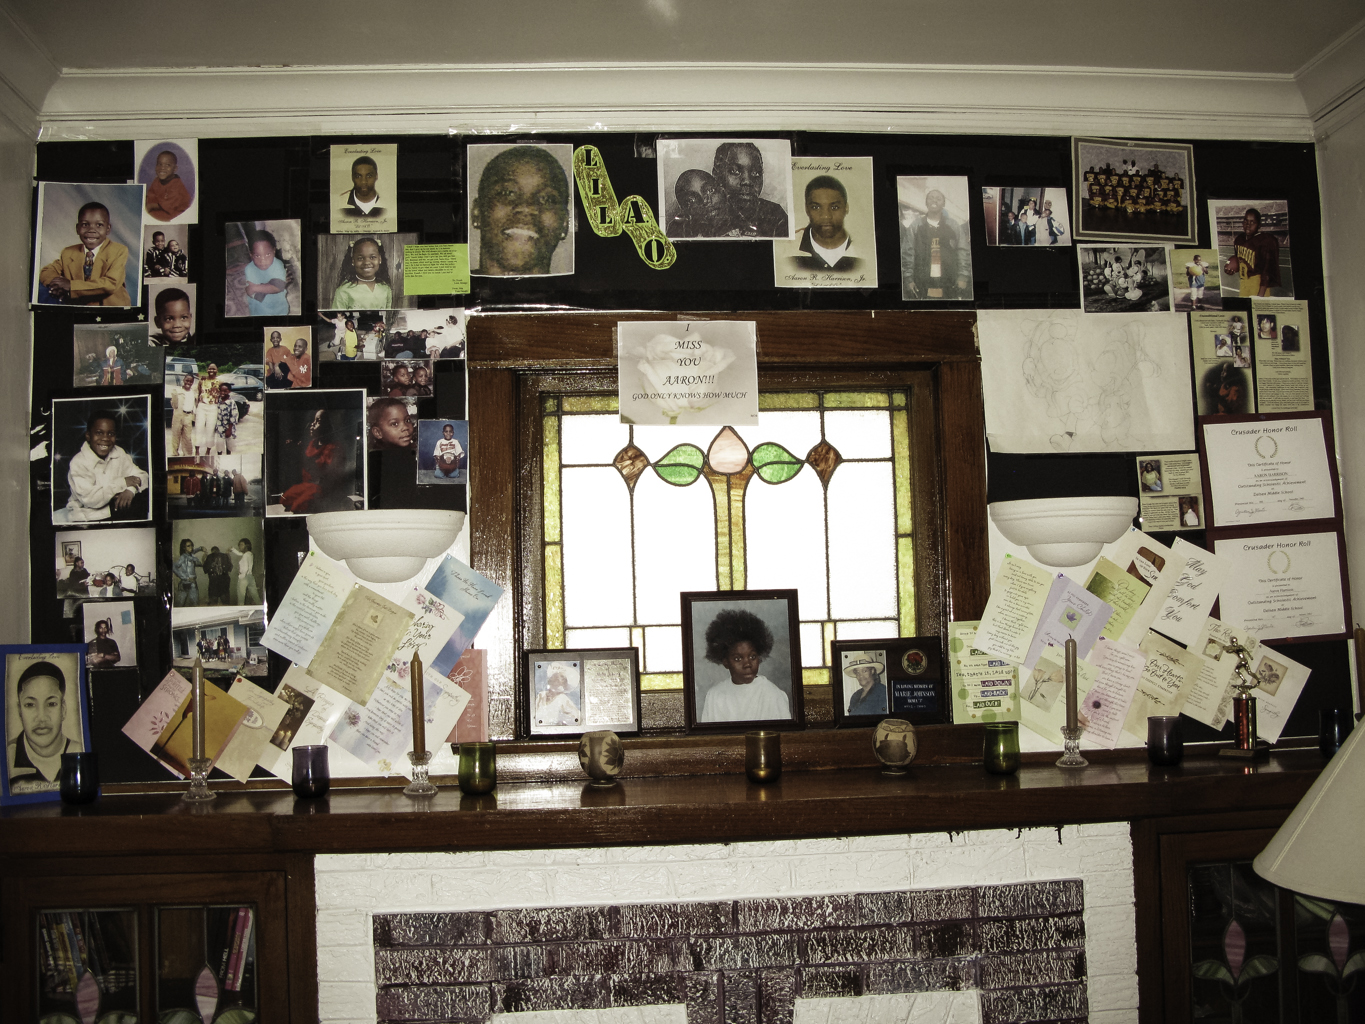 A memorial for Lil' A.O. that Annie Johnson has built above the mantel in her home.